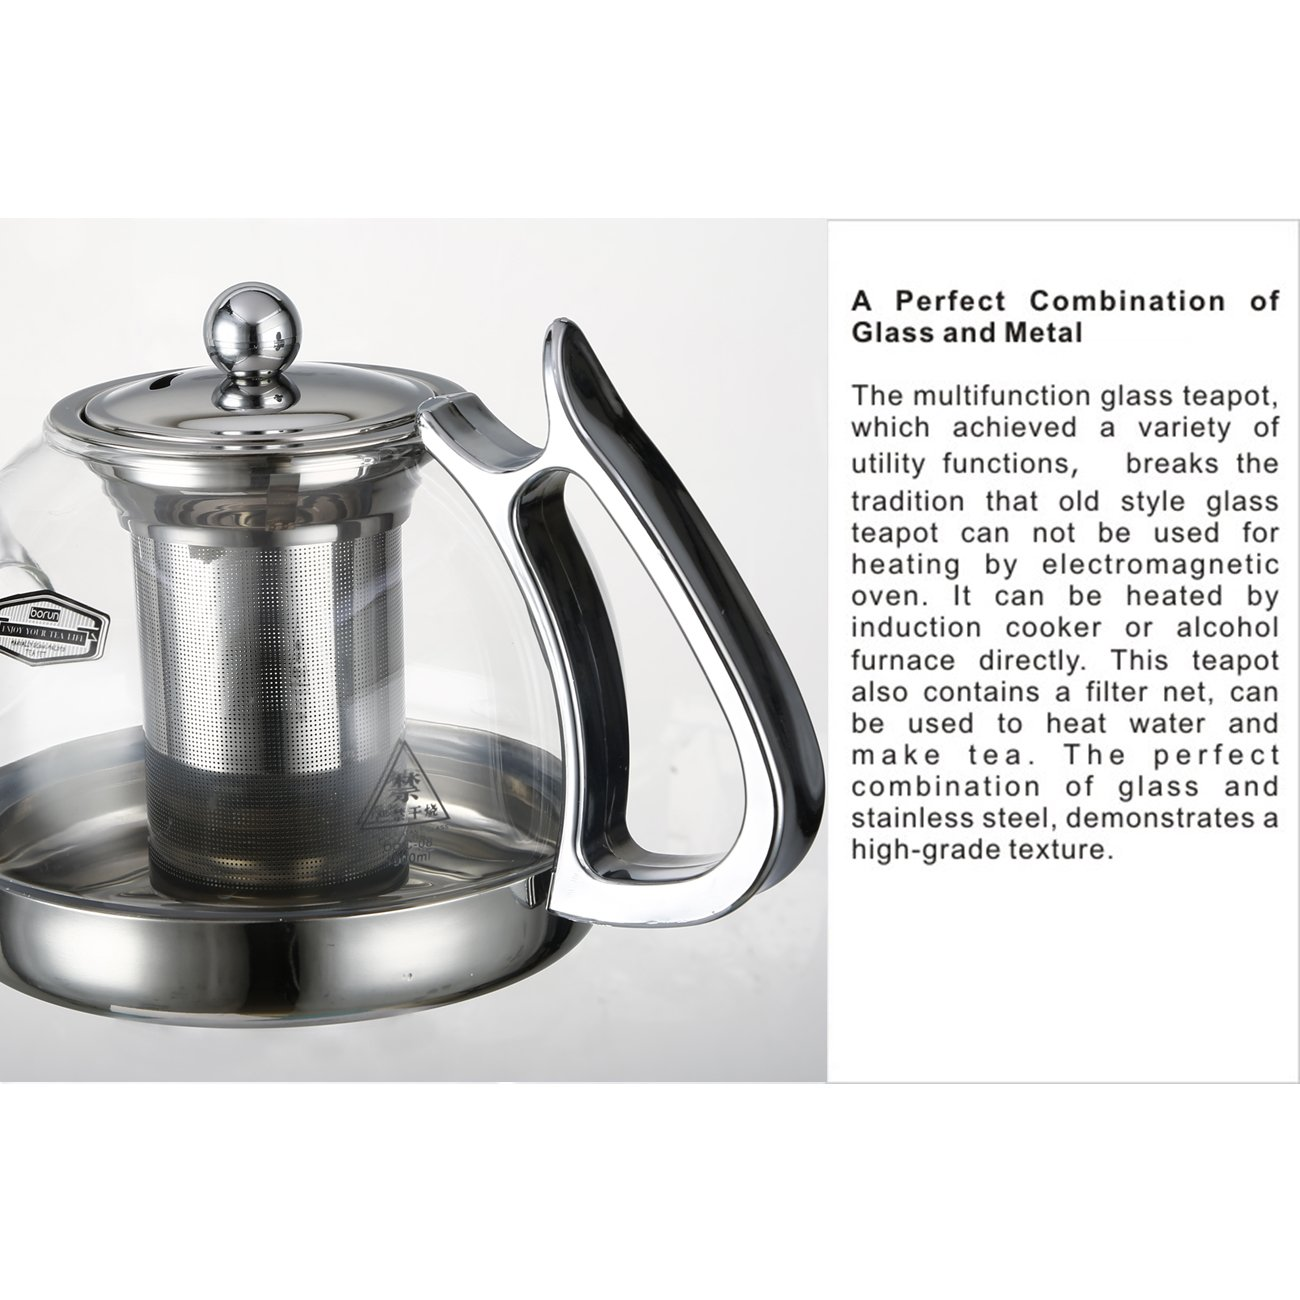 clear glass heat resistant infuser teapot induction cooker kettle  - clear glass heat resistant infuser teapot induction cooker kettle teaml amazoncouk kitchen  home